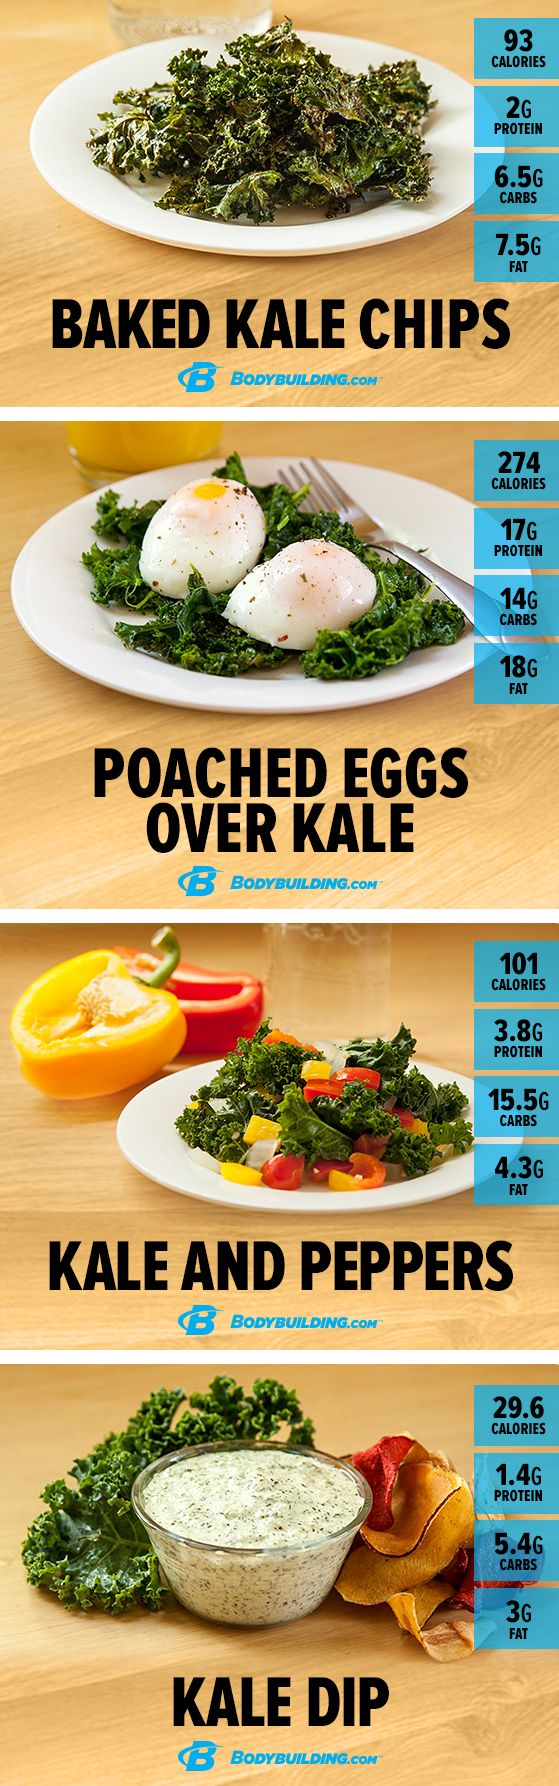 7 Killer Kale #Recipes! Green leafy vegetables rule the nutrition world, but the benefits of kale make it king of the hill. Try these 7 delicious recipes to make this nutritional powerhouse a part of your meal plan! More Green Leaf, Cycling Weights Training, Carb Cycling Weights, Food, Bodybuilding Macros, Macro Recipes, Kale Macros, Fitness Macros, Macros Recipe Kale macro recipes